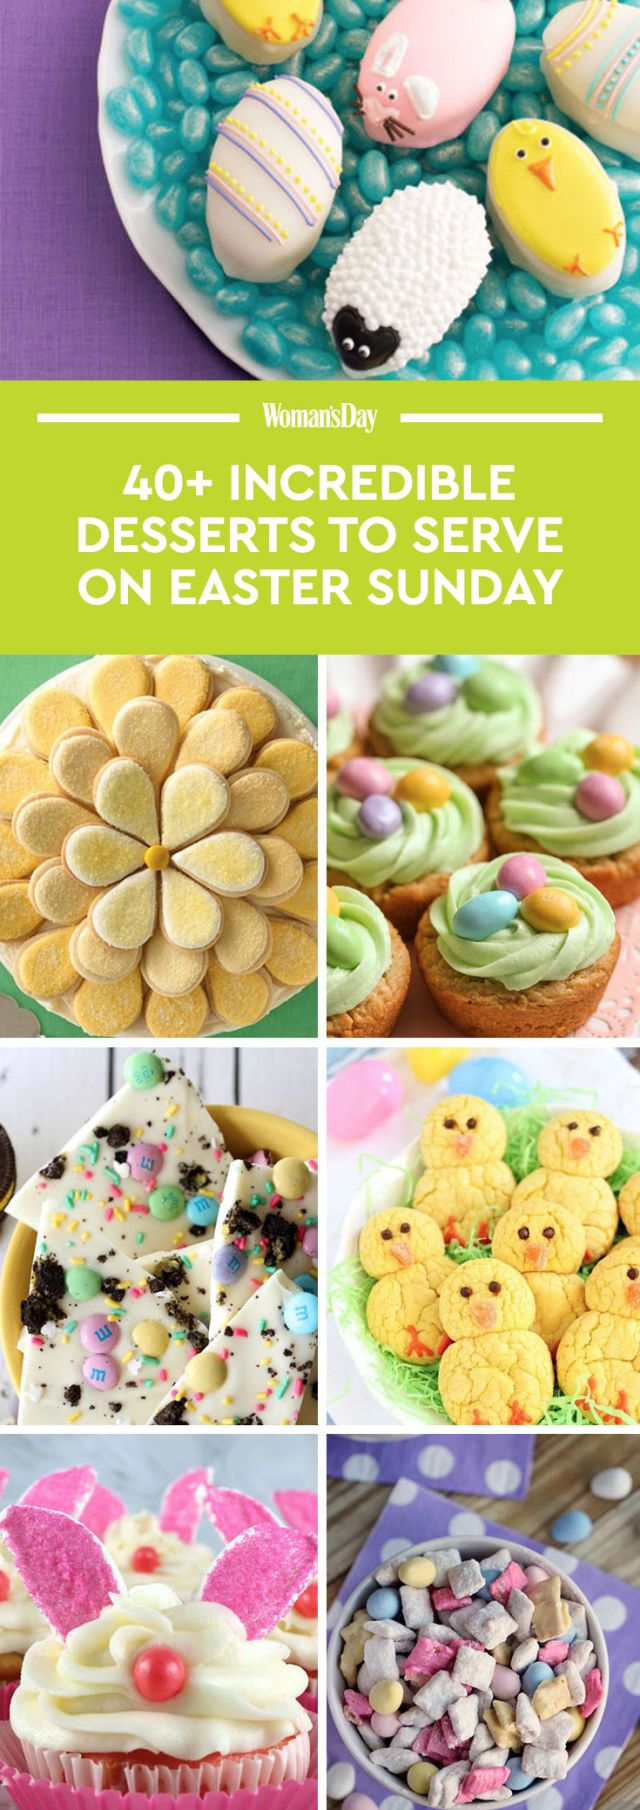 Save these Easter dessert recipes for later by pinning this image, and follow Wo…   – Food & drink